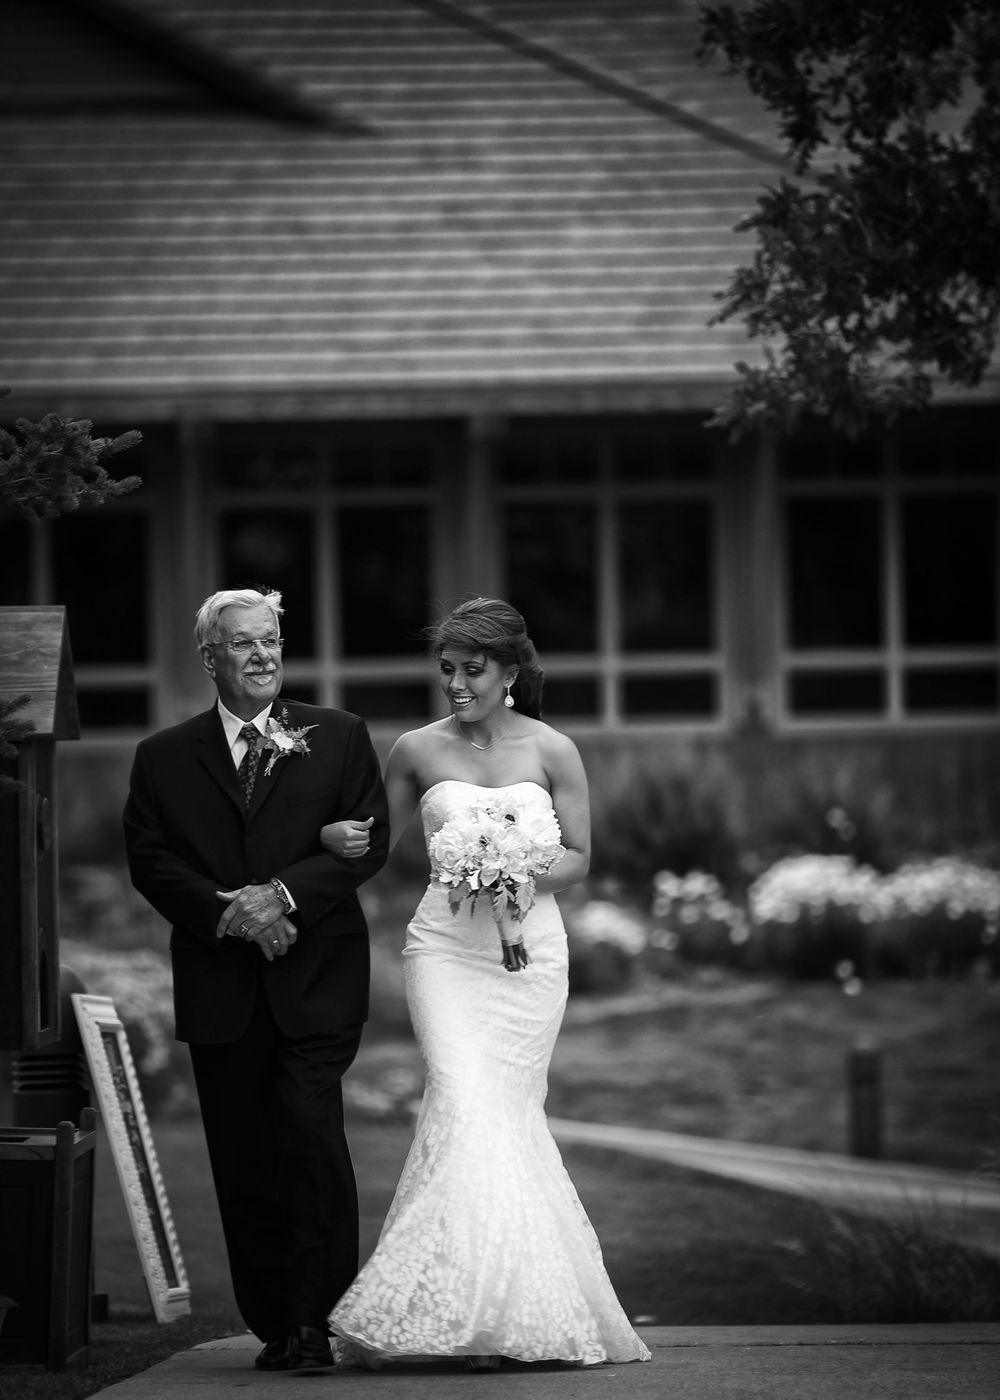 my amazing grandfather walked me down the isle